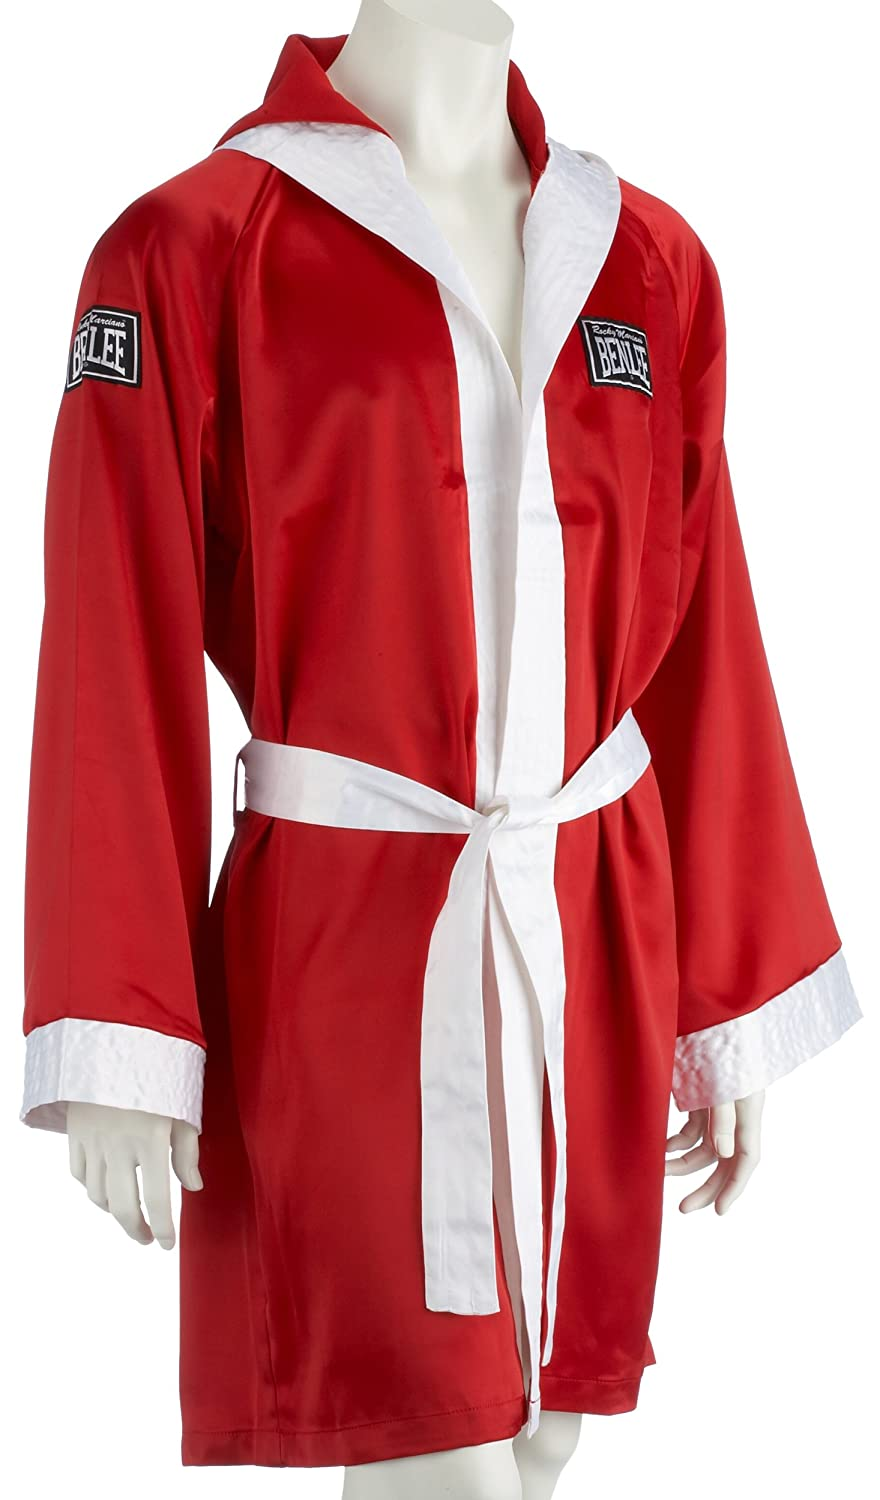 BENLEE Rocky Marciano Boxmantel Boxing Robe Rot (RED) GröM-_e: M Ben Lee